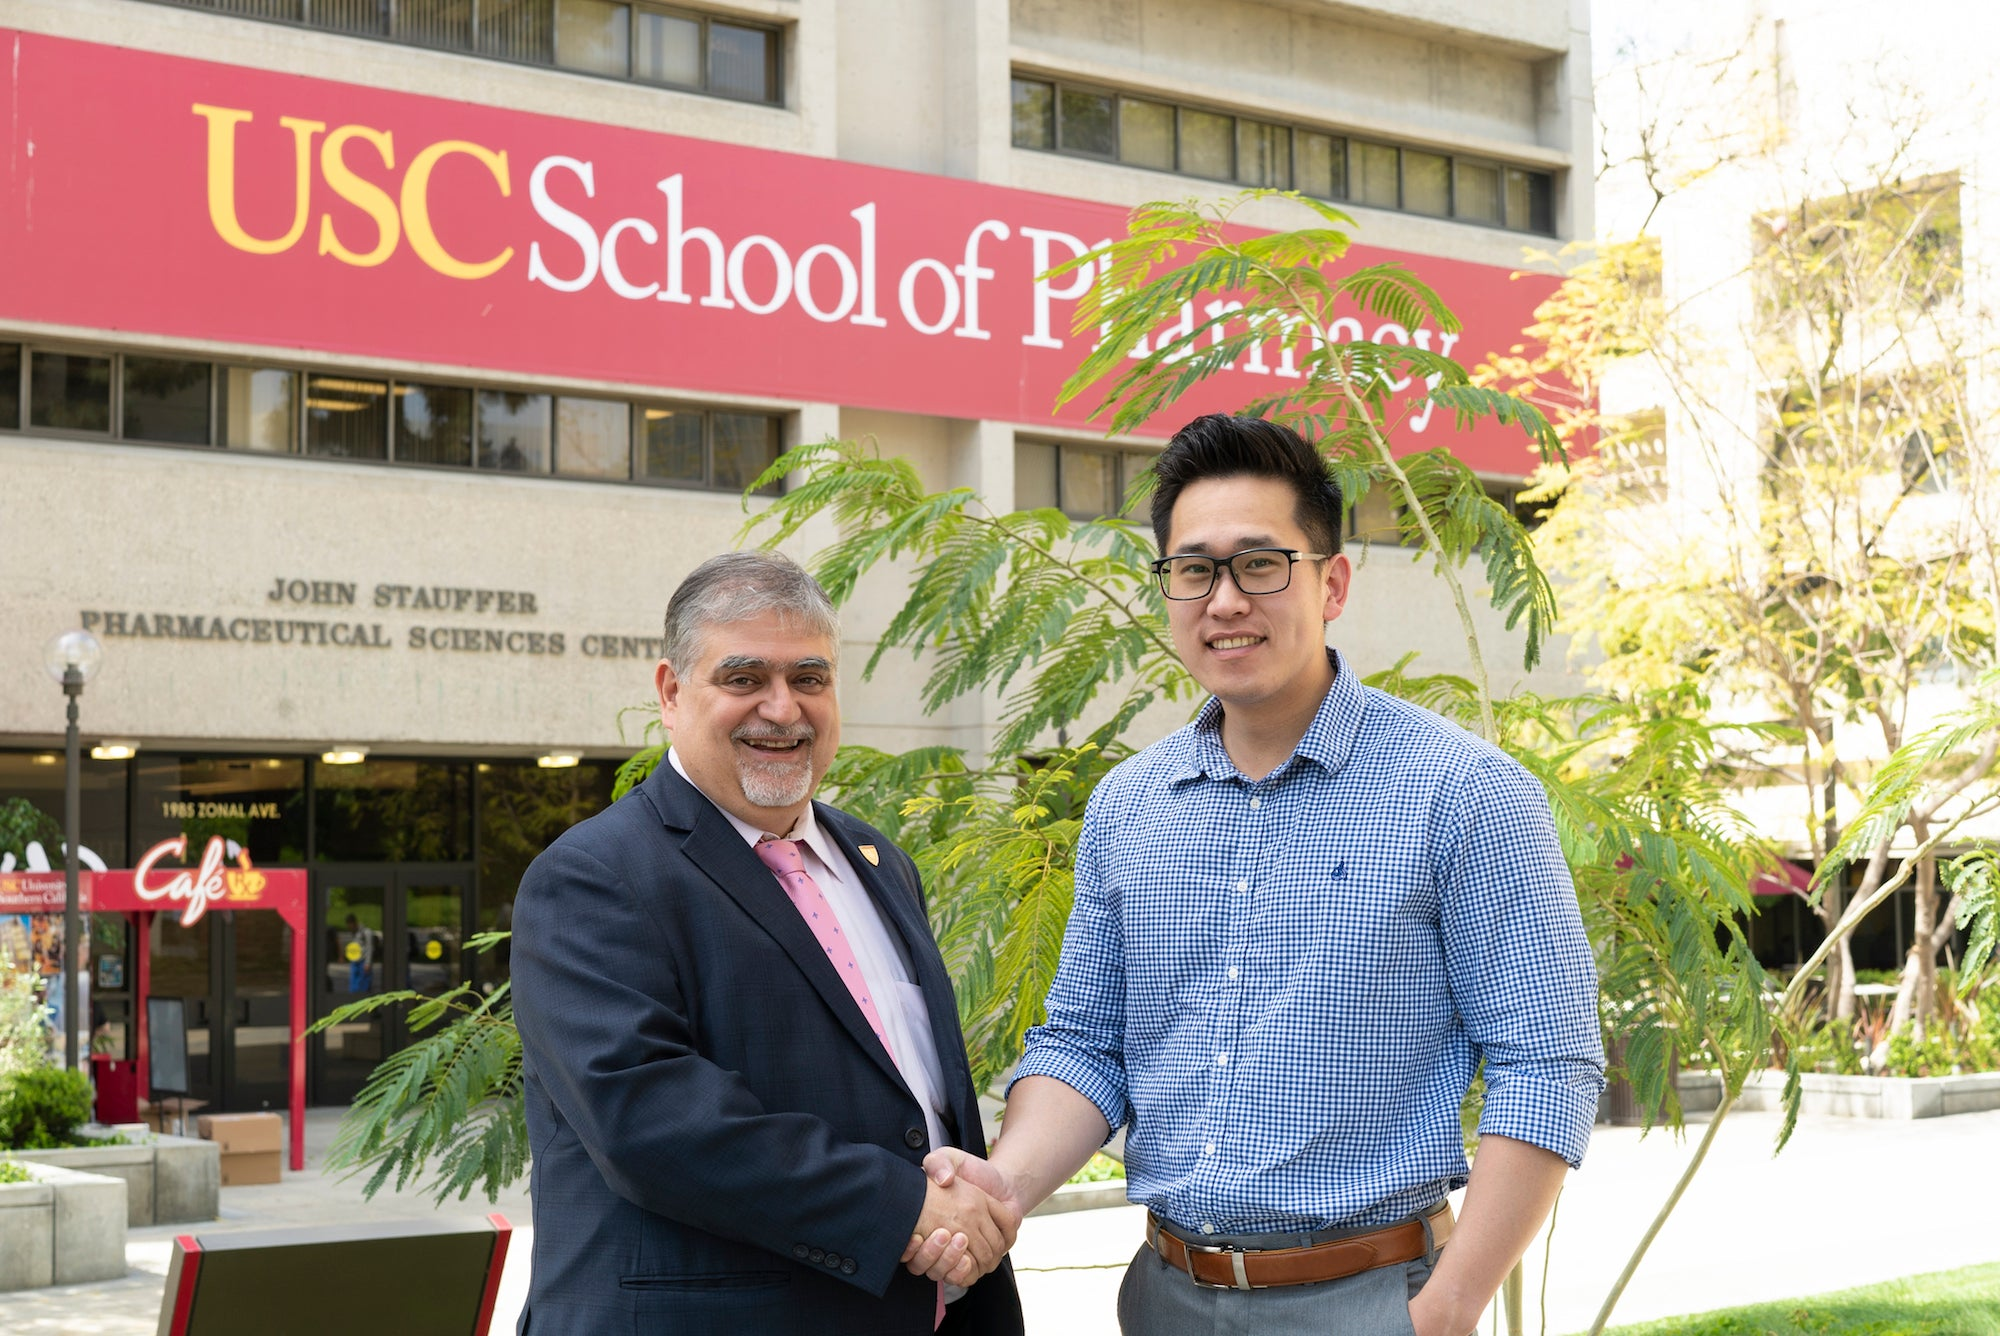 Morning Recovery donates to USC School of Pharmacy to fund health research